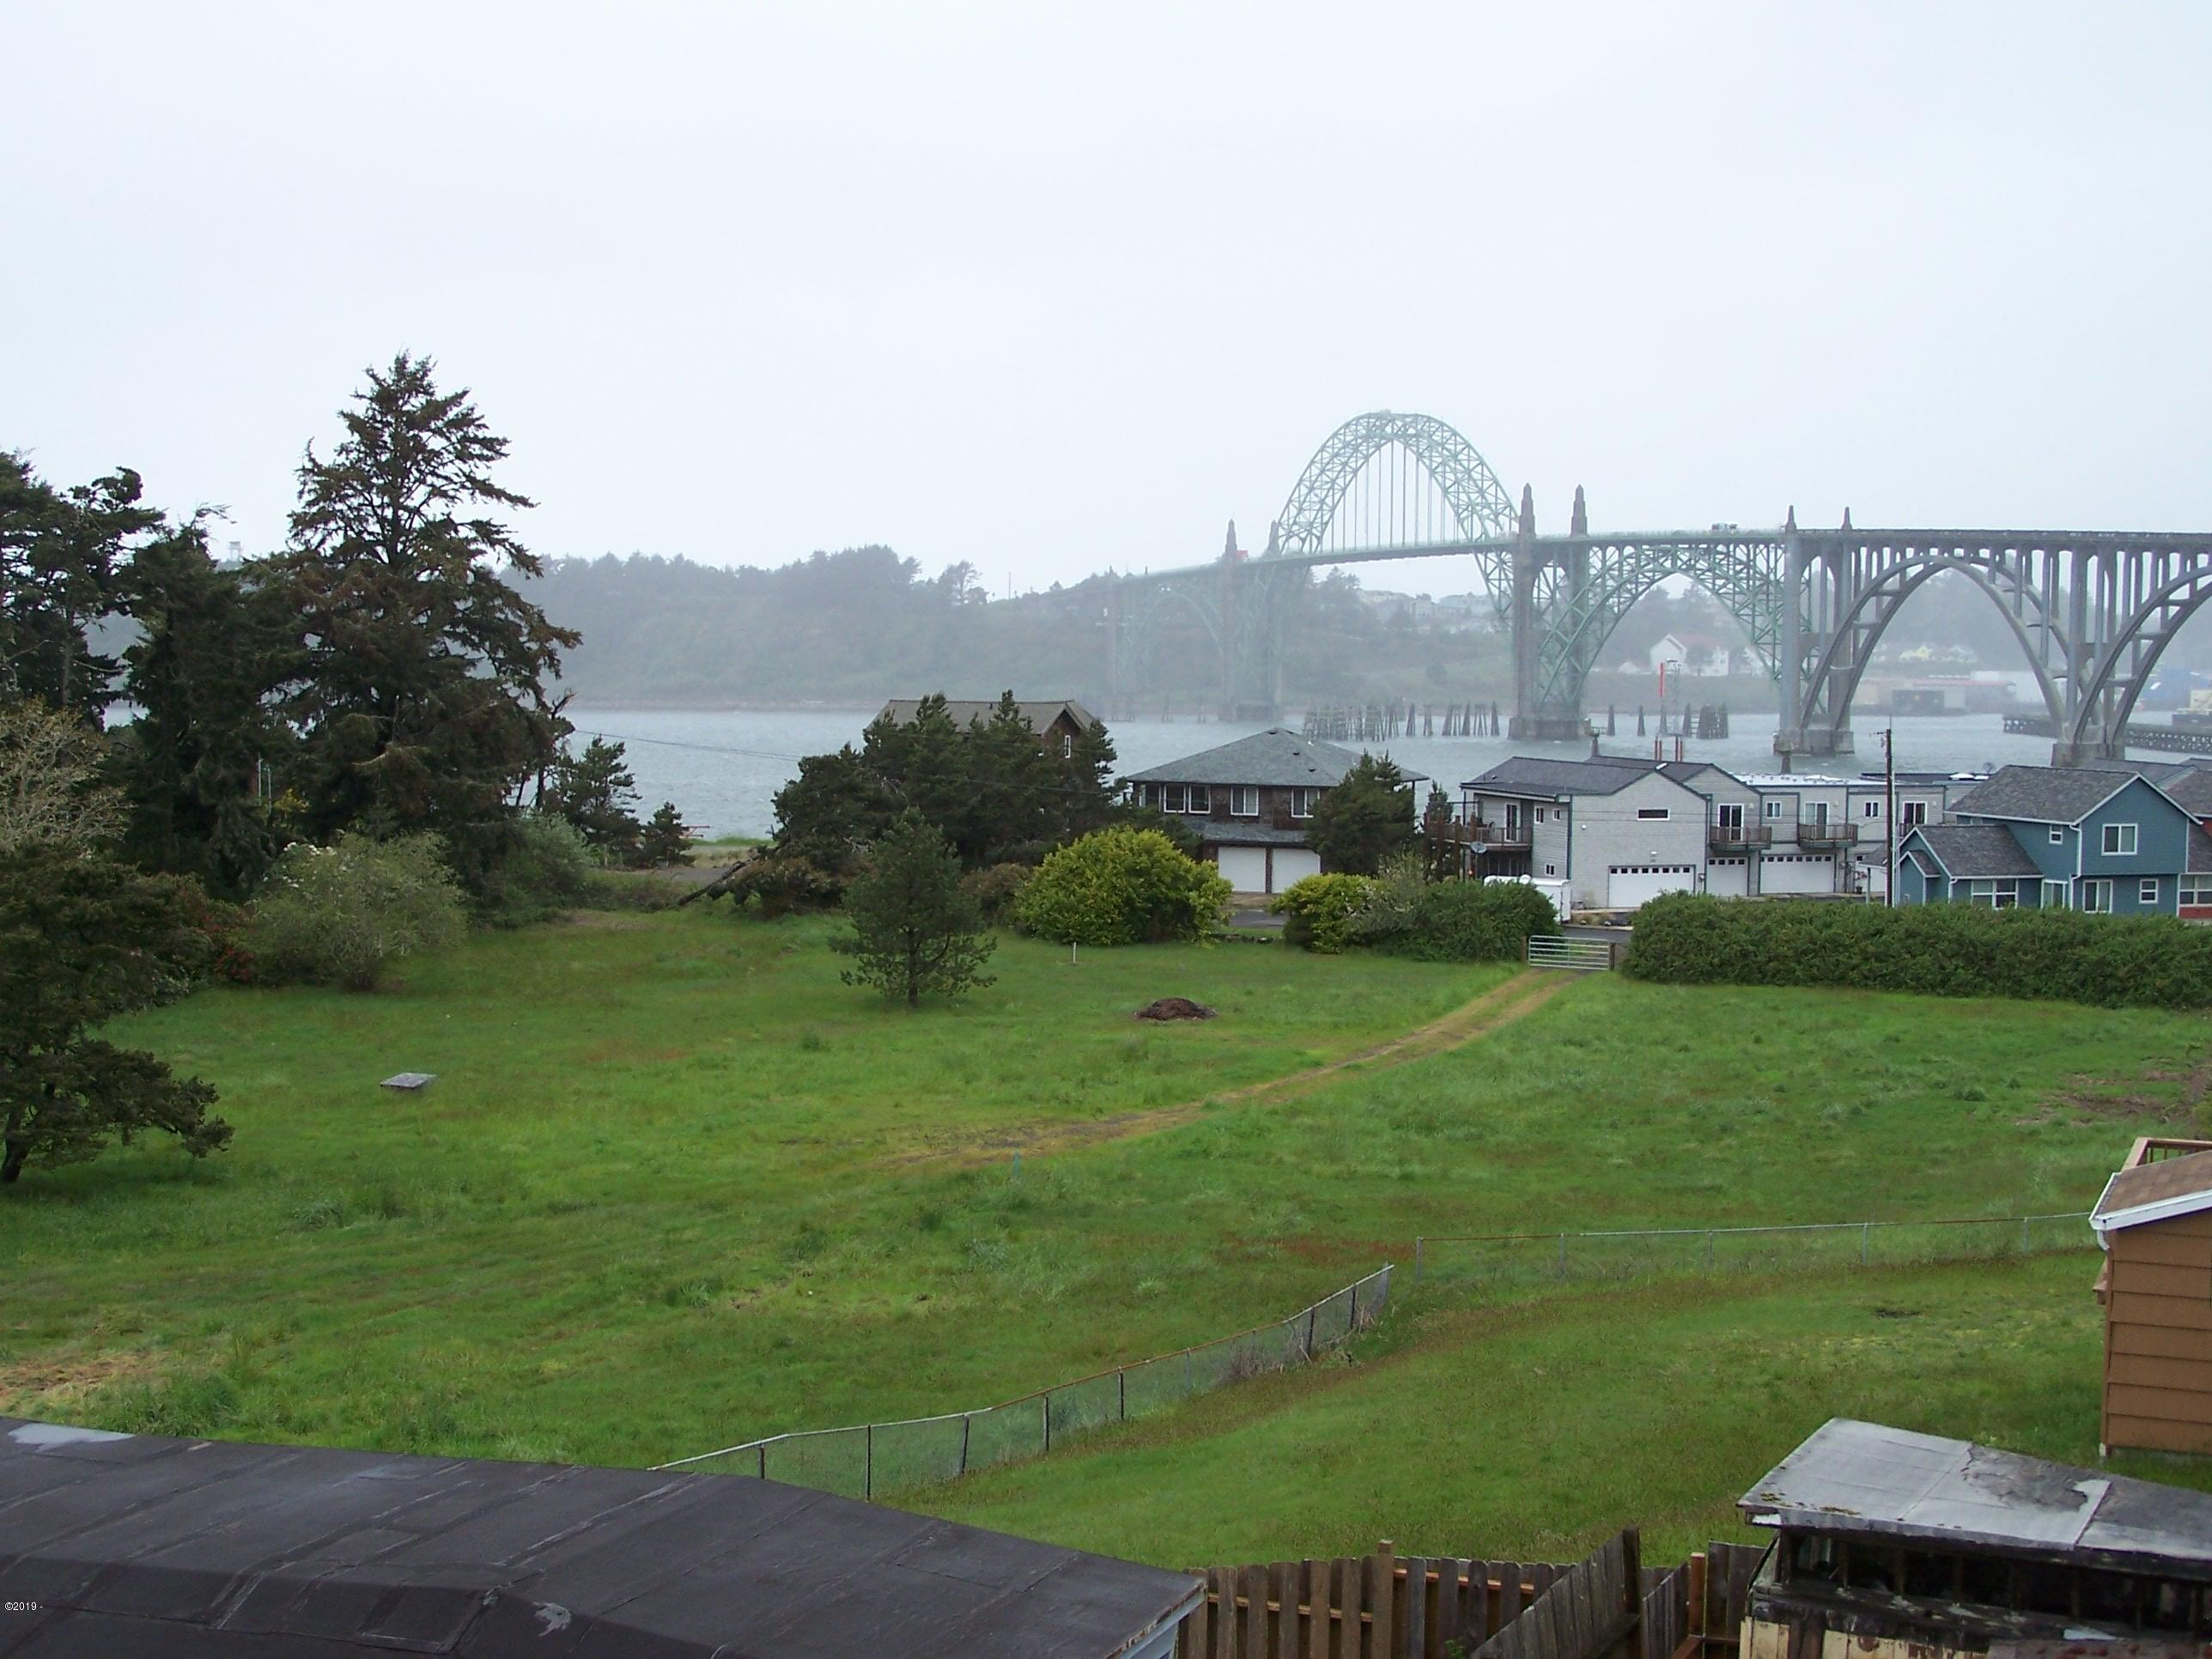 233 SW 27th, Newport, OR 97365 - view of site